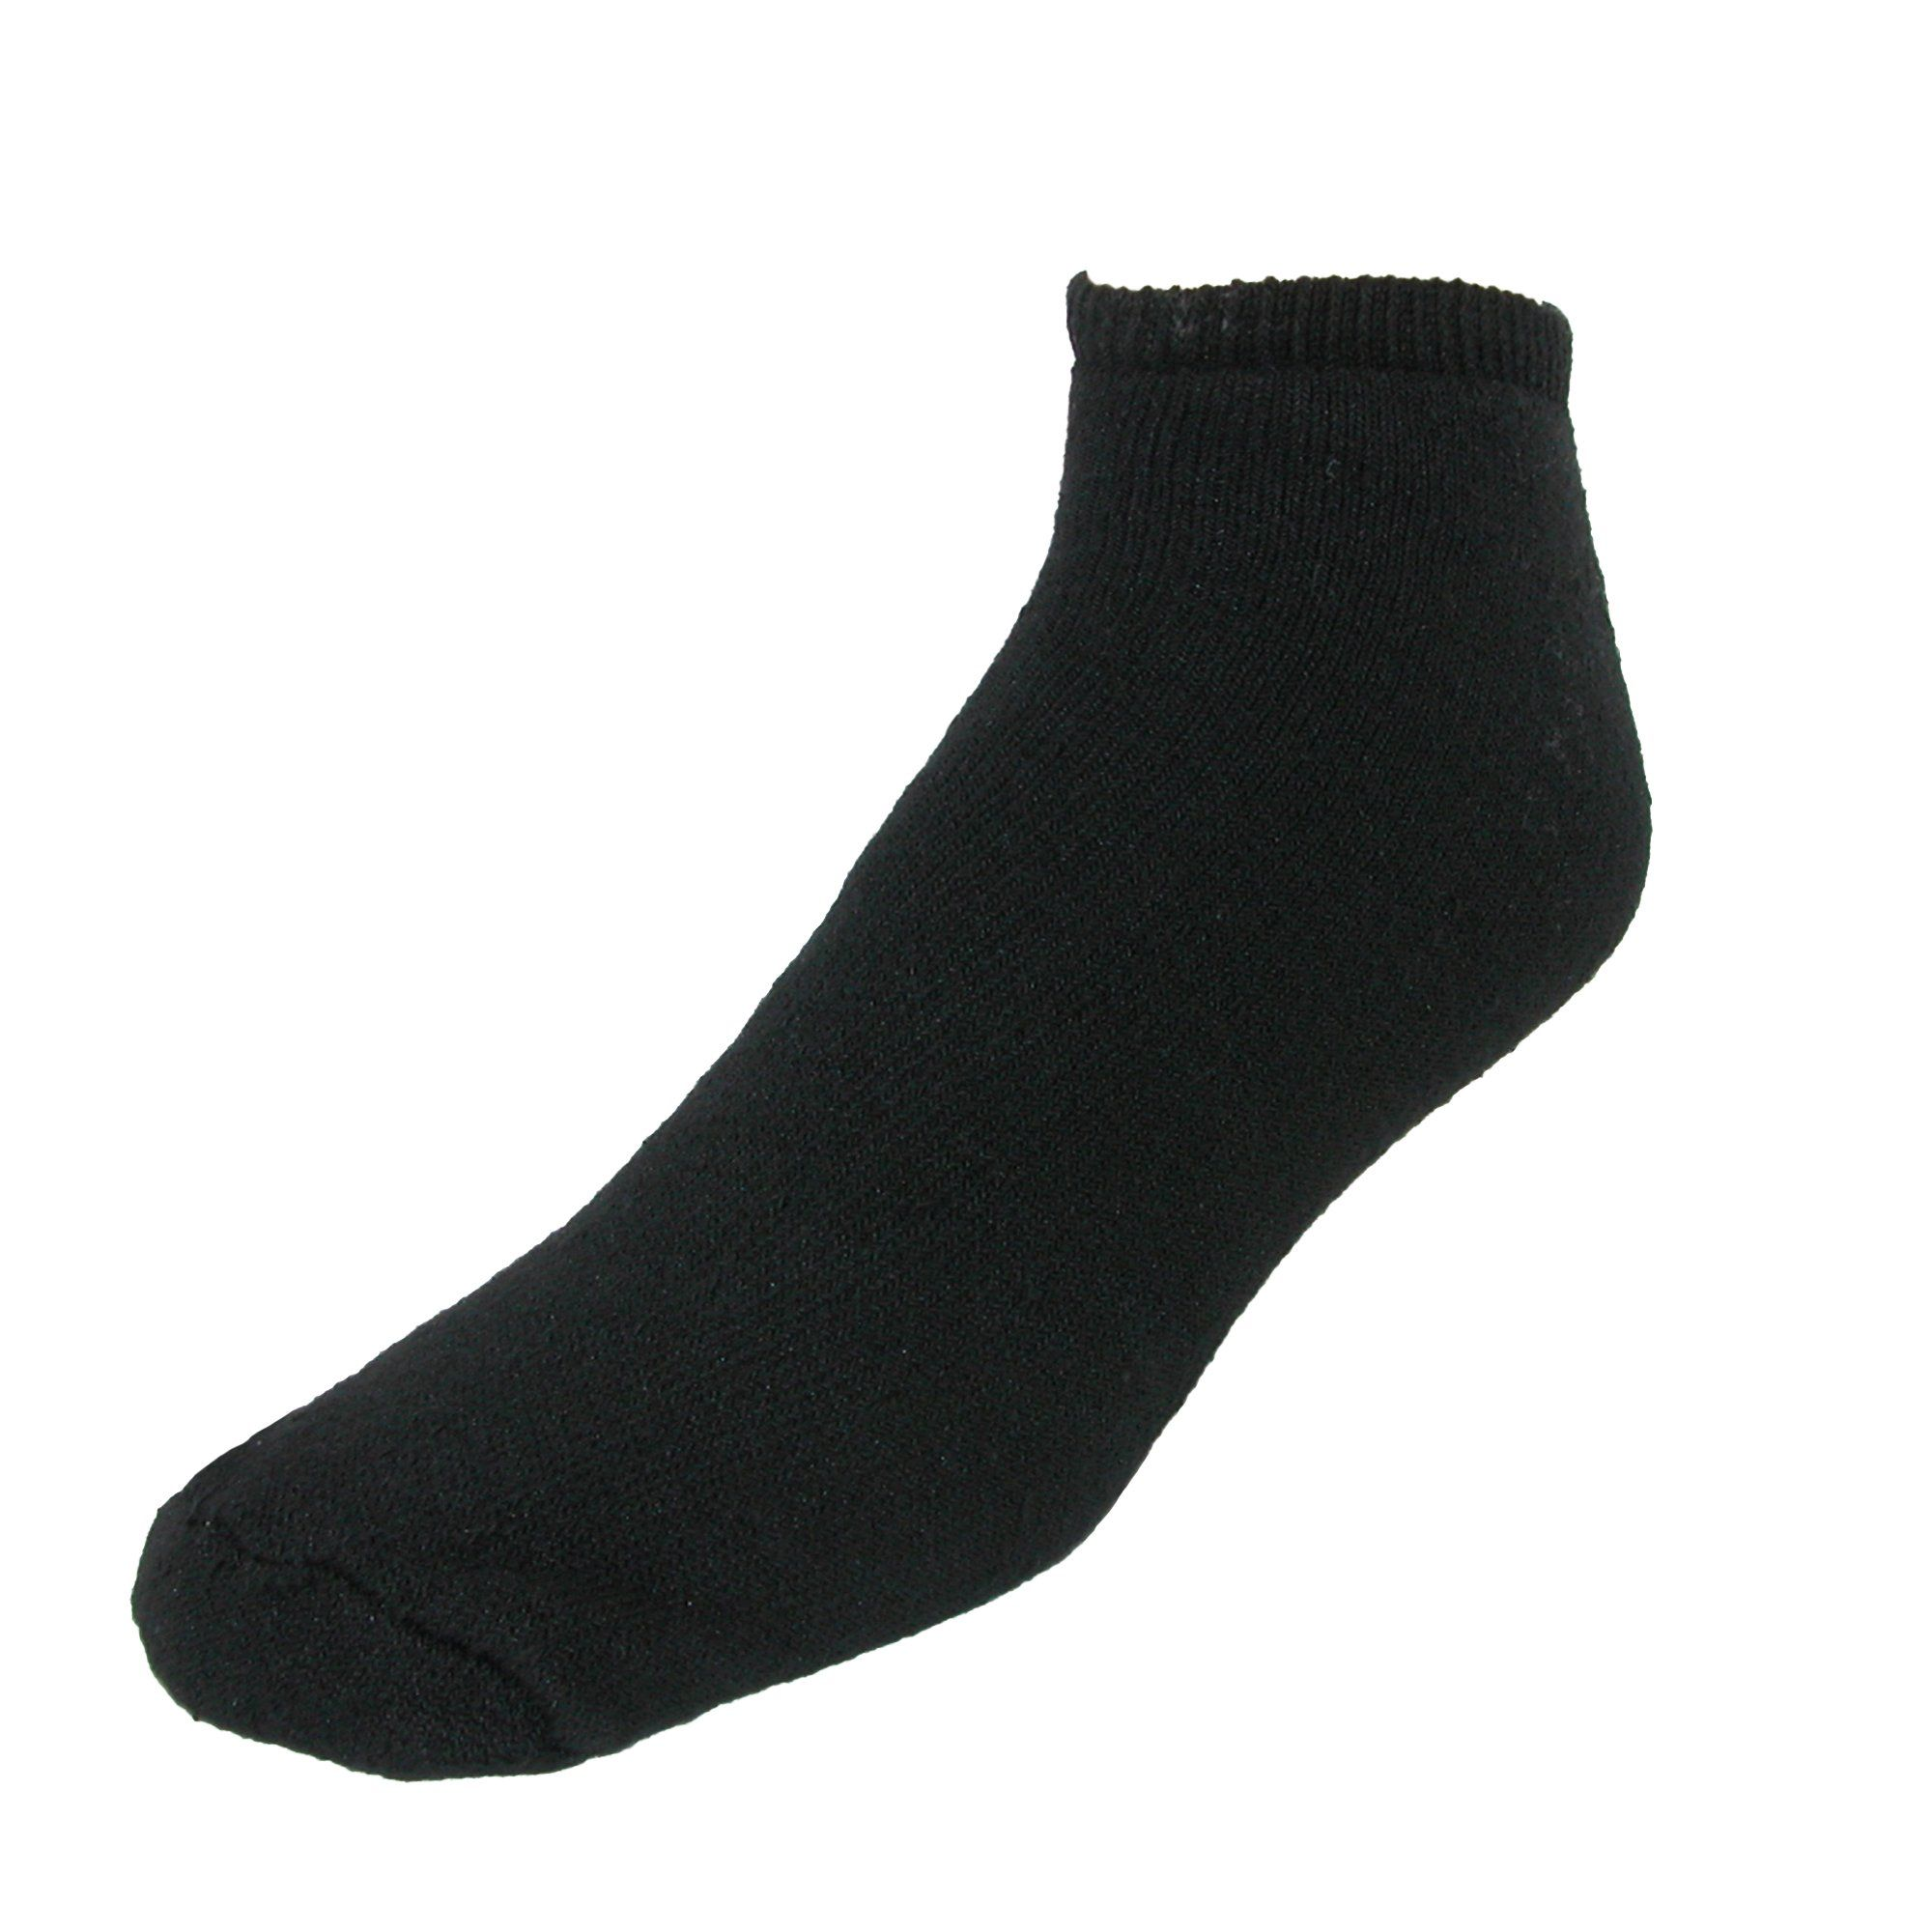 This Non-binding Sock Is Ideal For Men And Women With